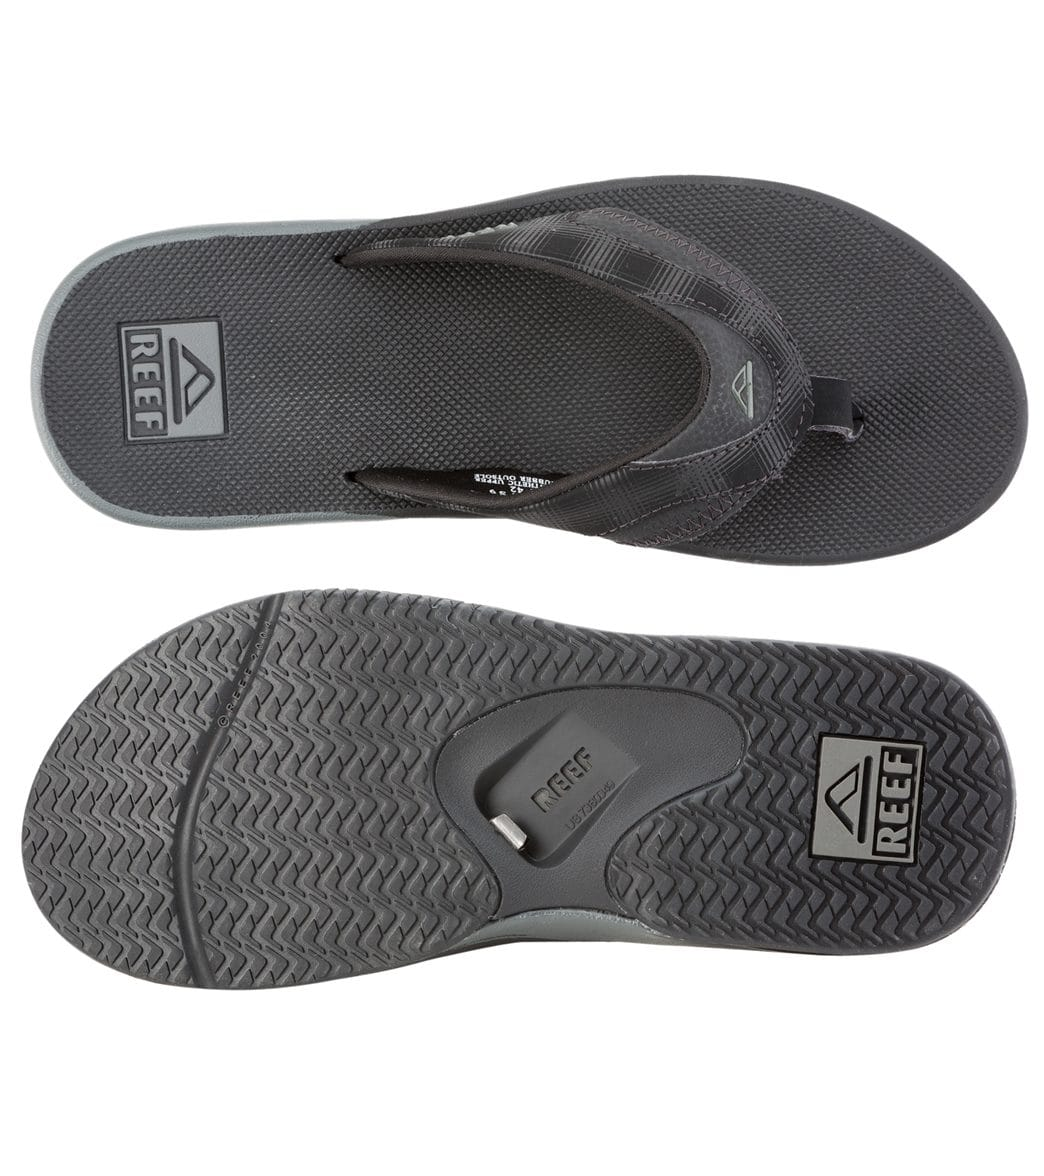 7a44486d3136 Reef Men s Fanning Prints Flip Flop at SwimOutlet.com - Free Shipping